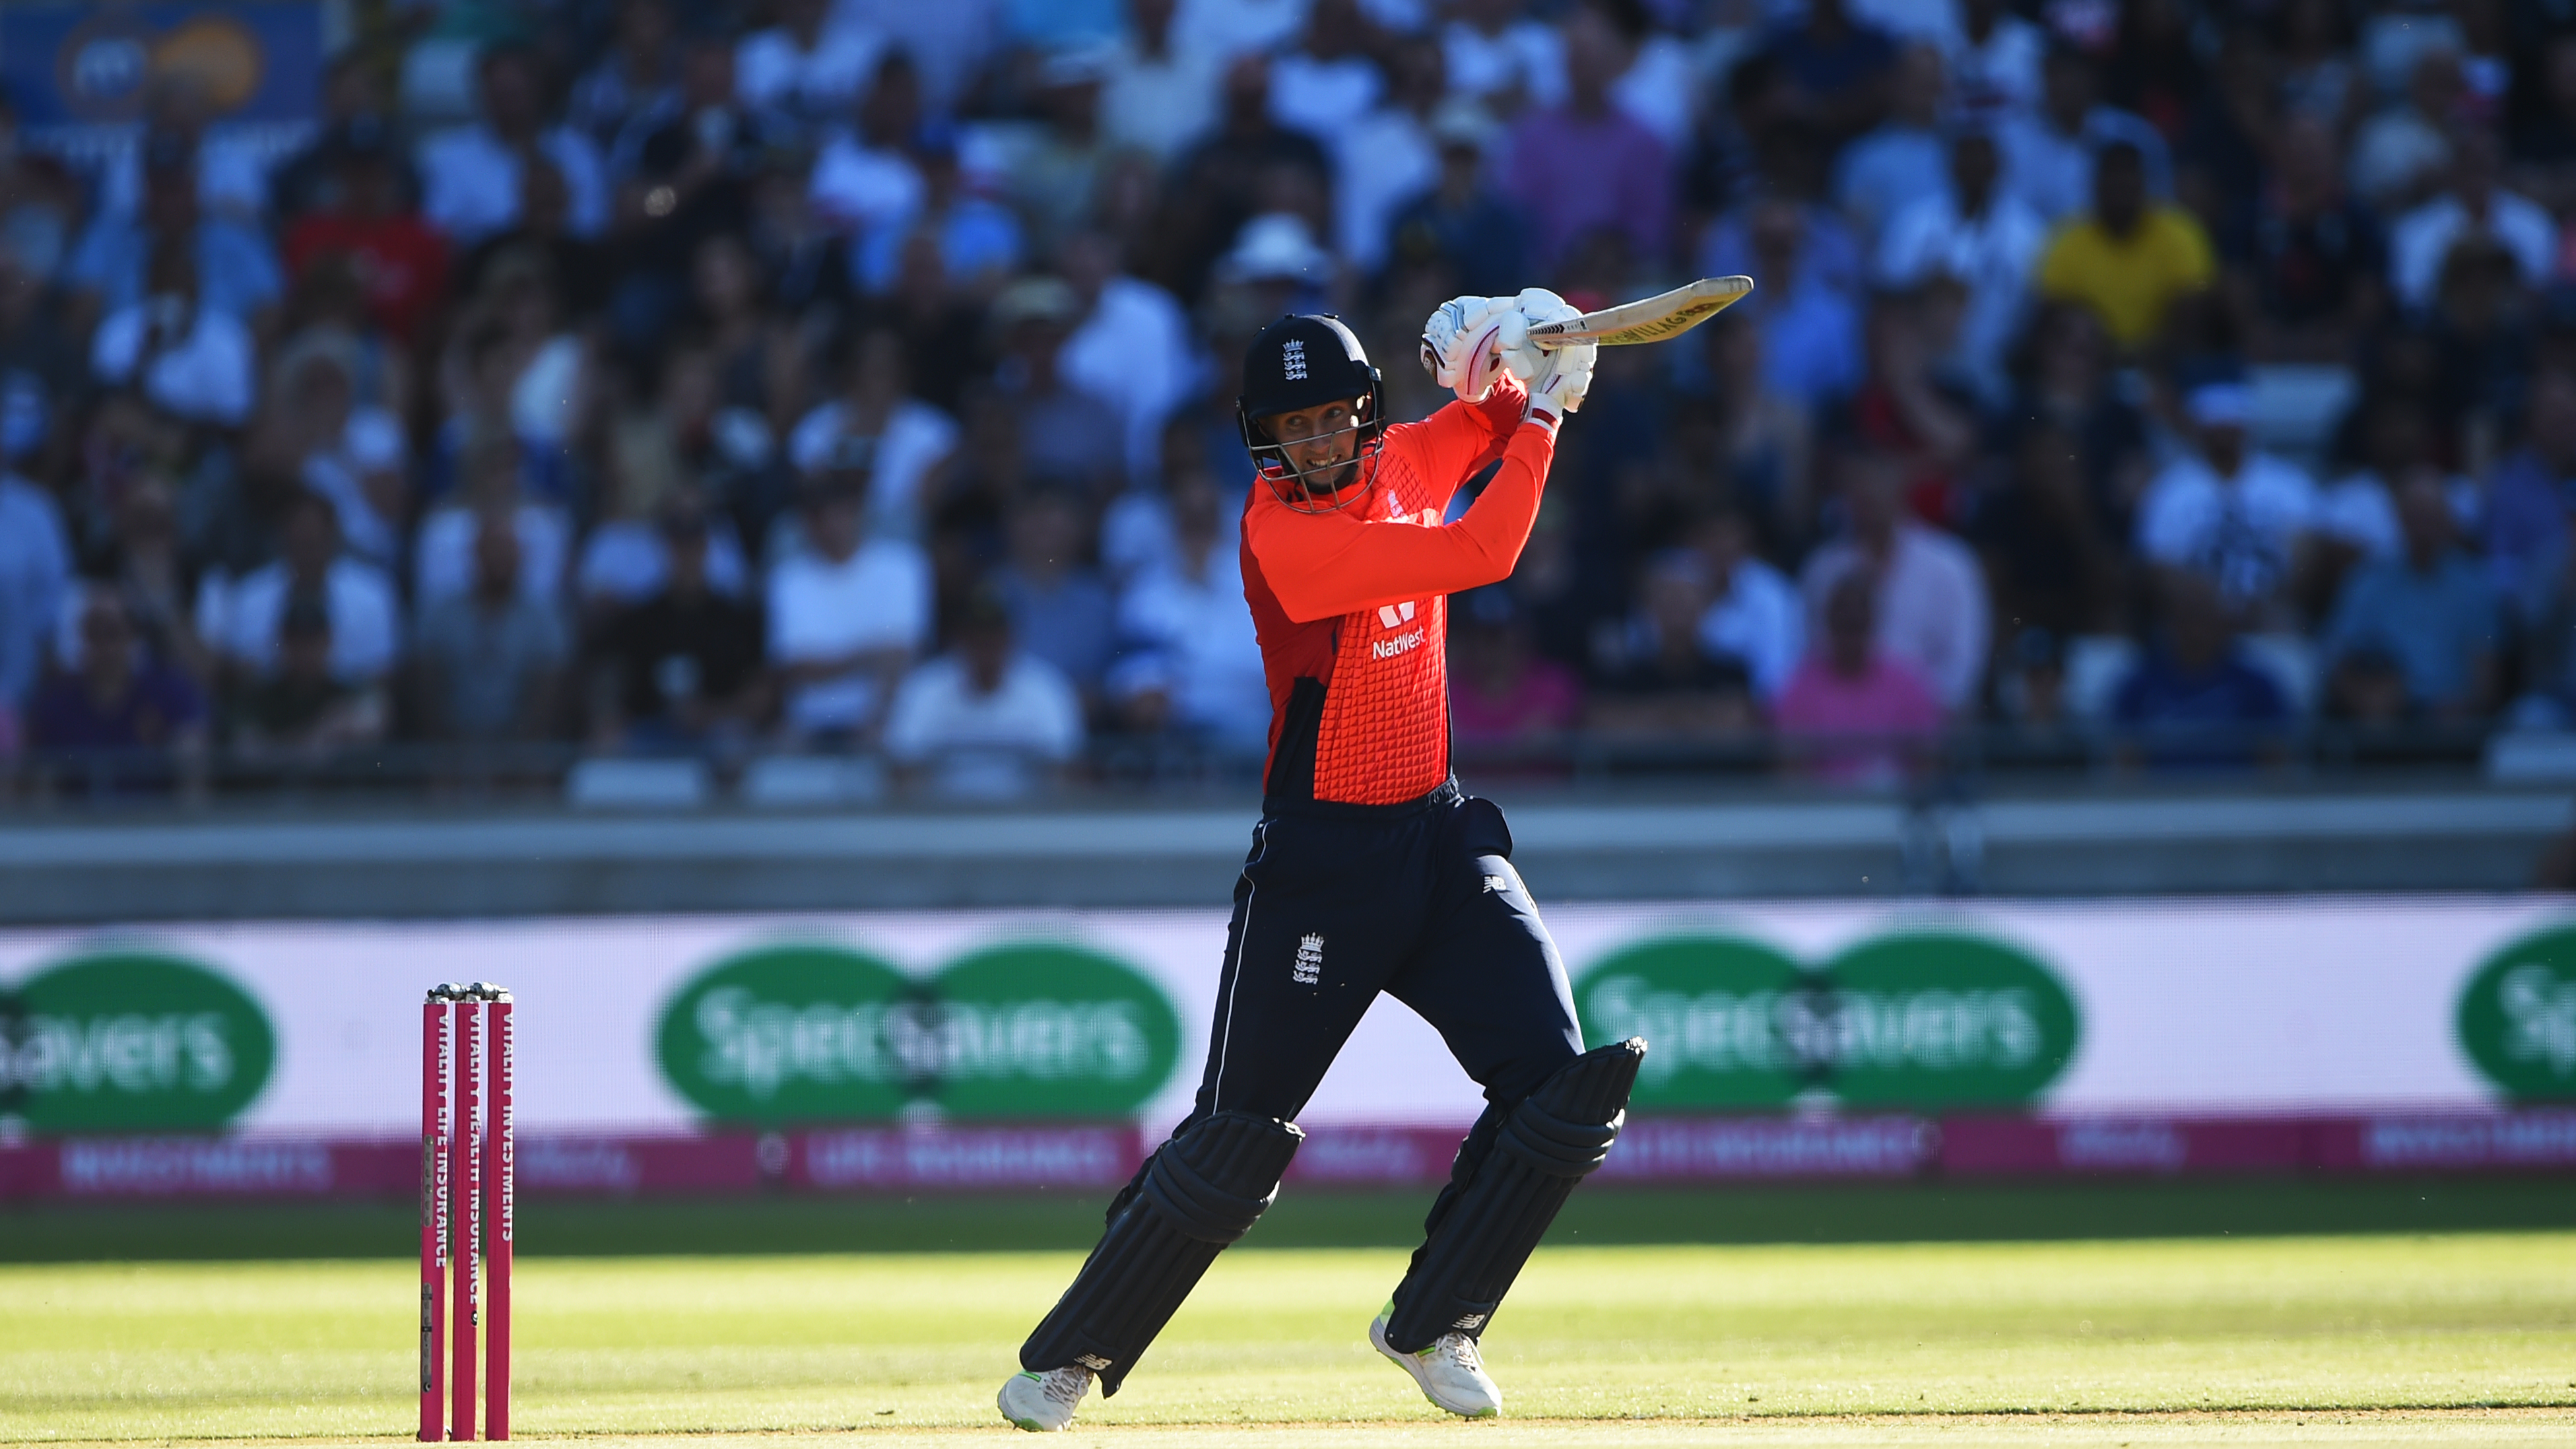 Joe Root set to feature in Big Bash League to gain more T20 experience